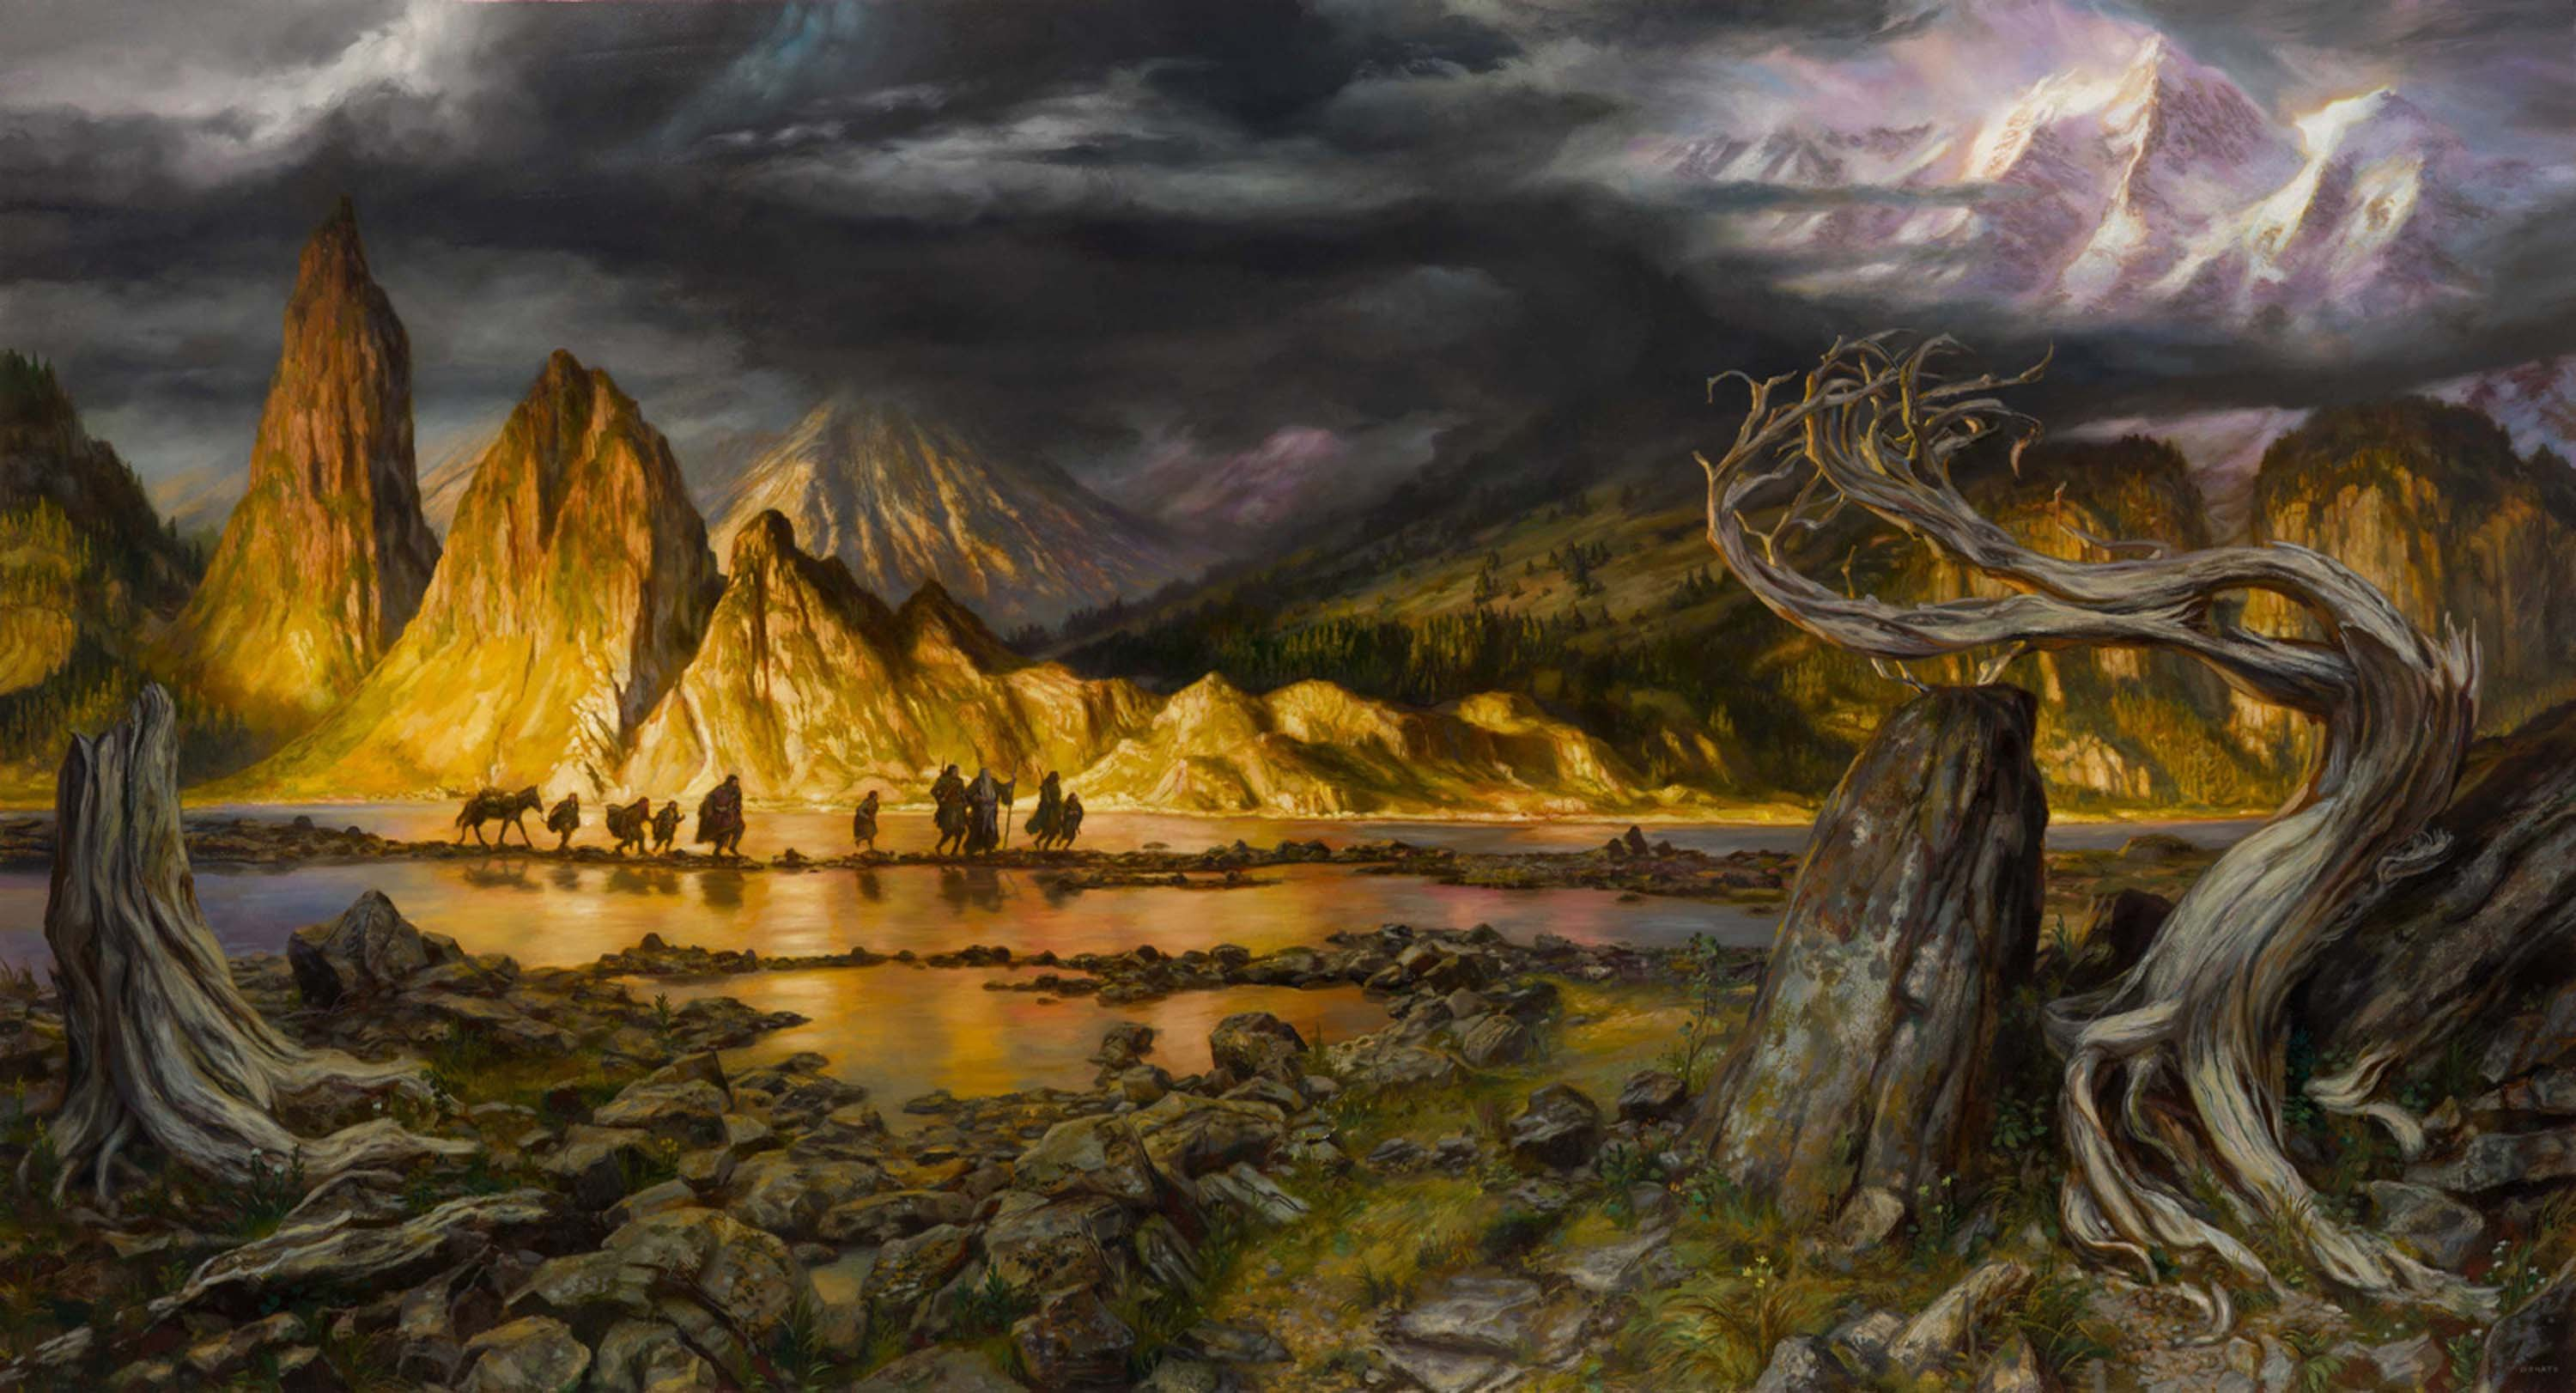 "The Fellowship in Hollin 34"" x 65""  Oil on Panel 2017 'only the stones remember the elves now.' original art available for purchase"